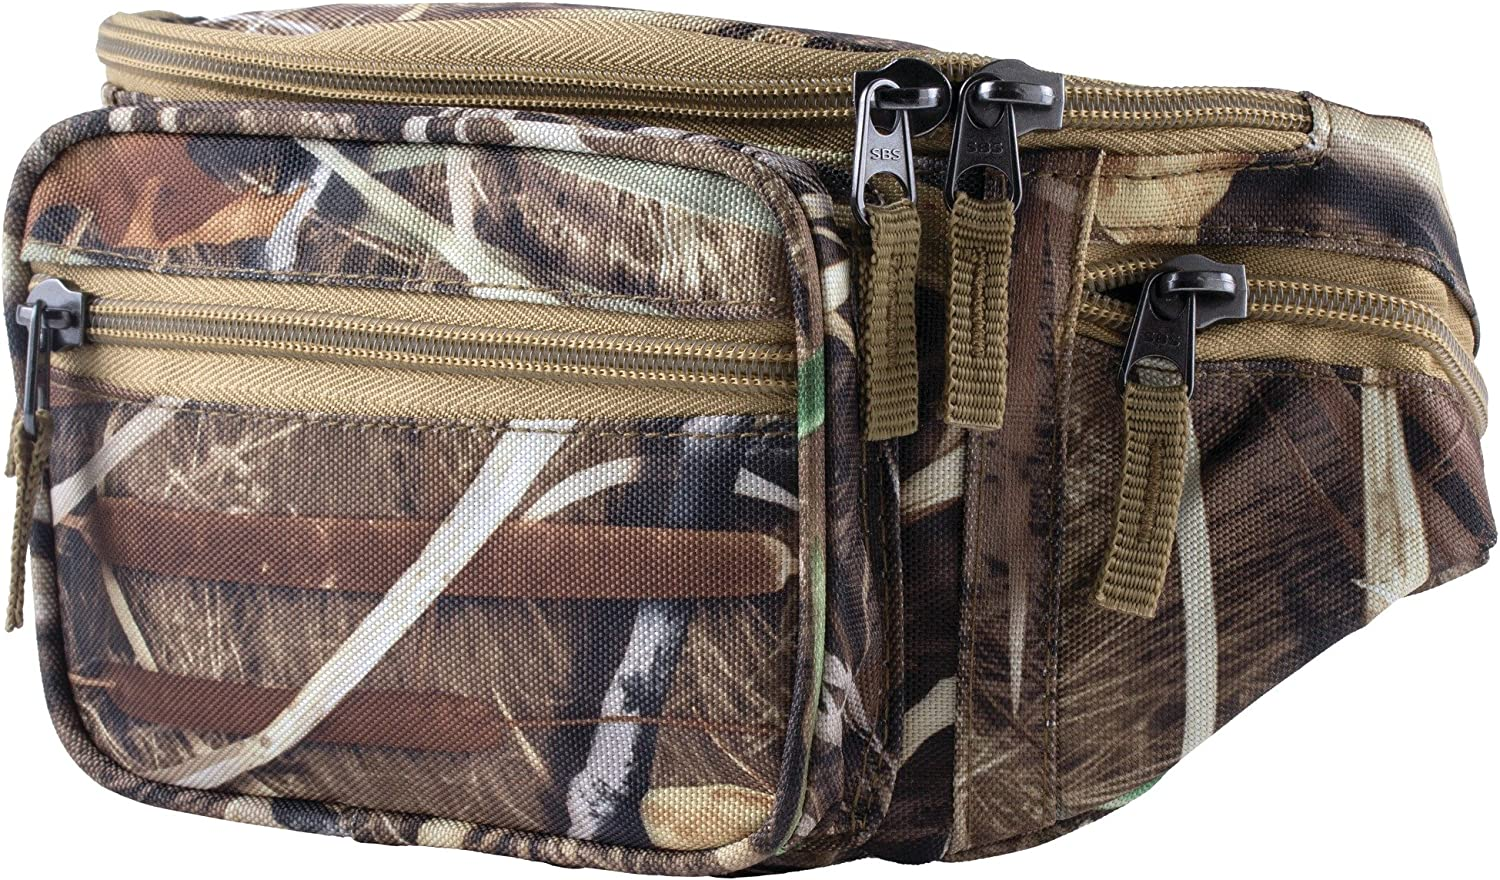 Tampa Mall Maxam JX Swamper Waist Sale price Bag Carry Your Outdoor Next Adventur for